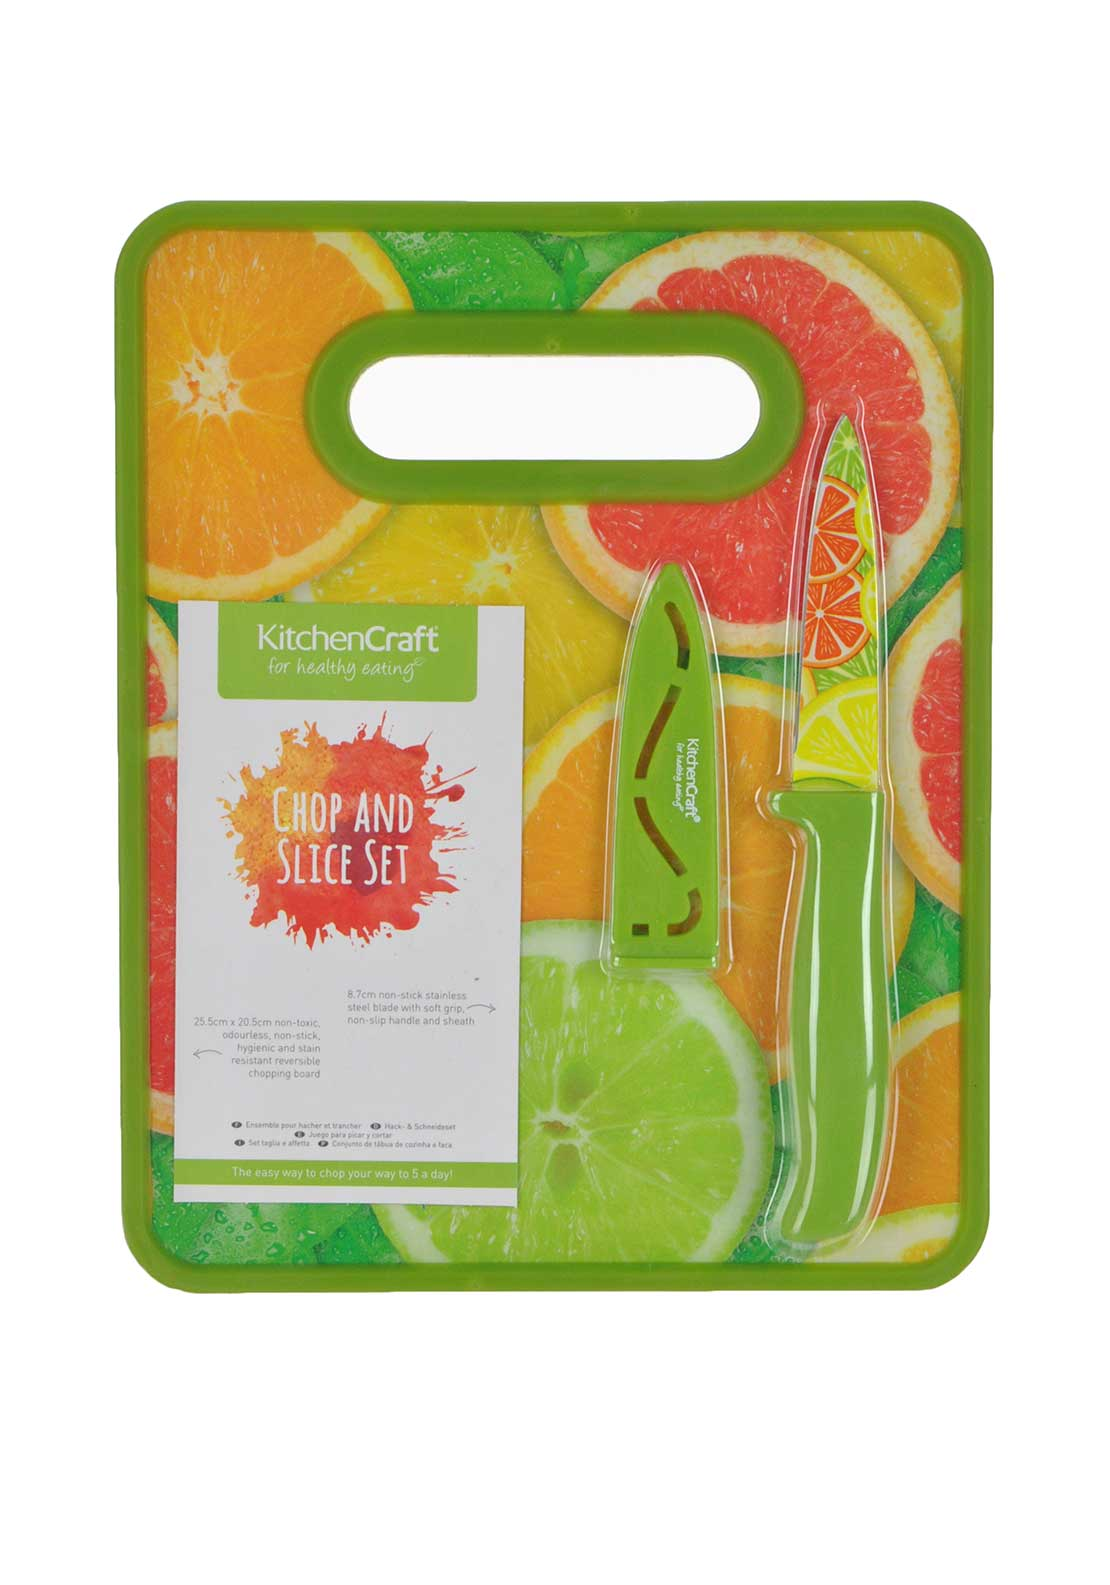 Kitchen Craft Chop and Slice Set